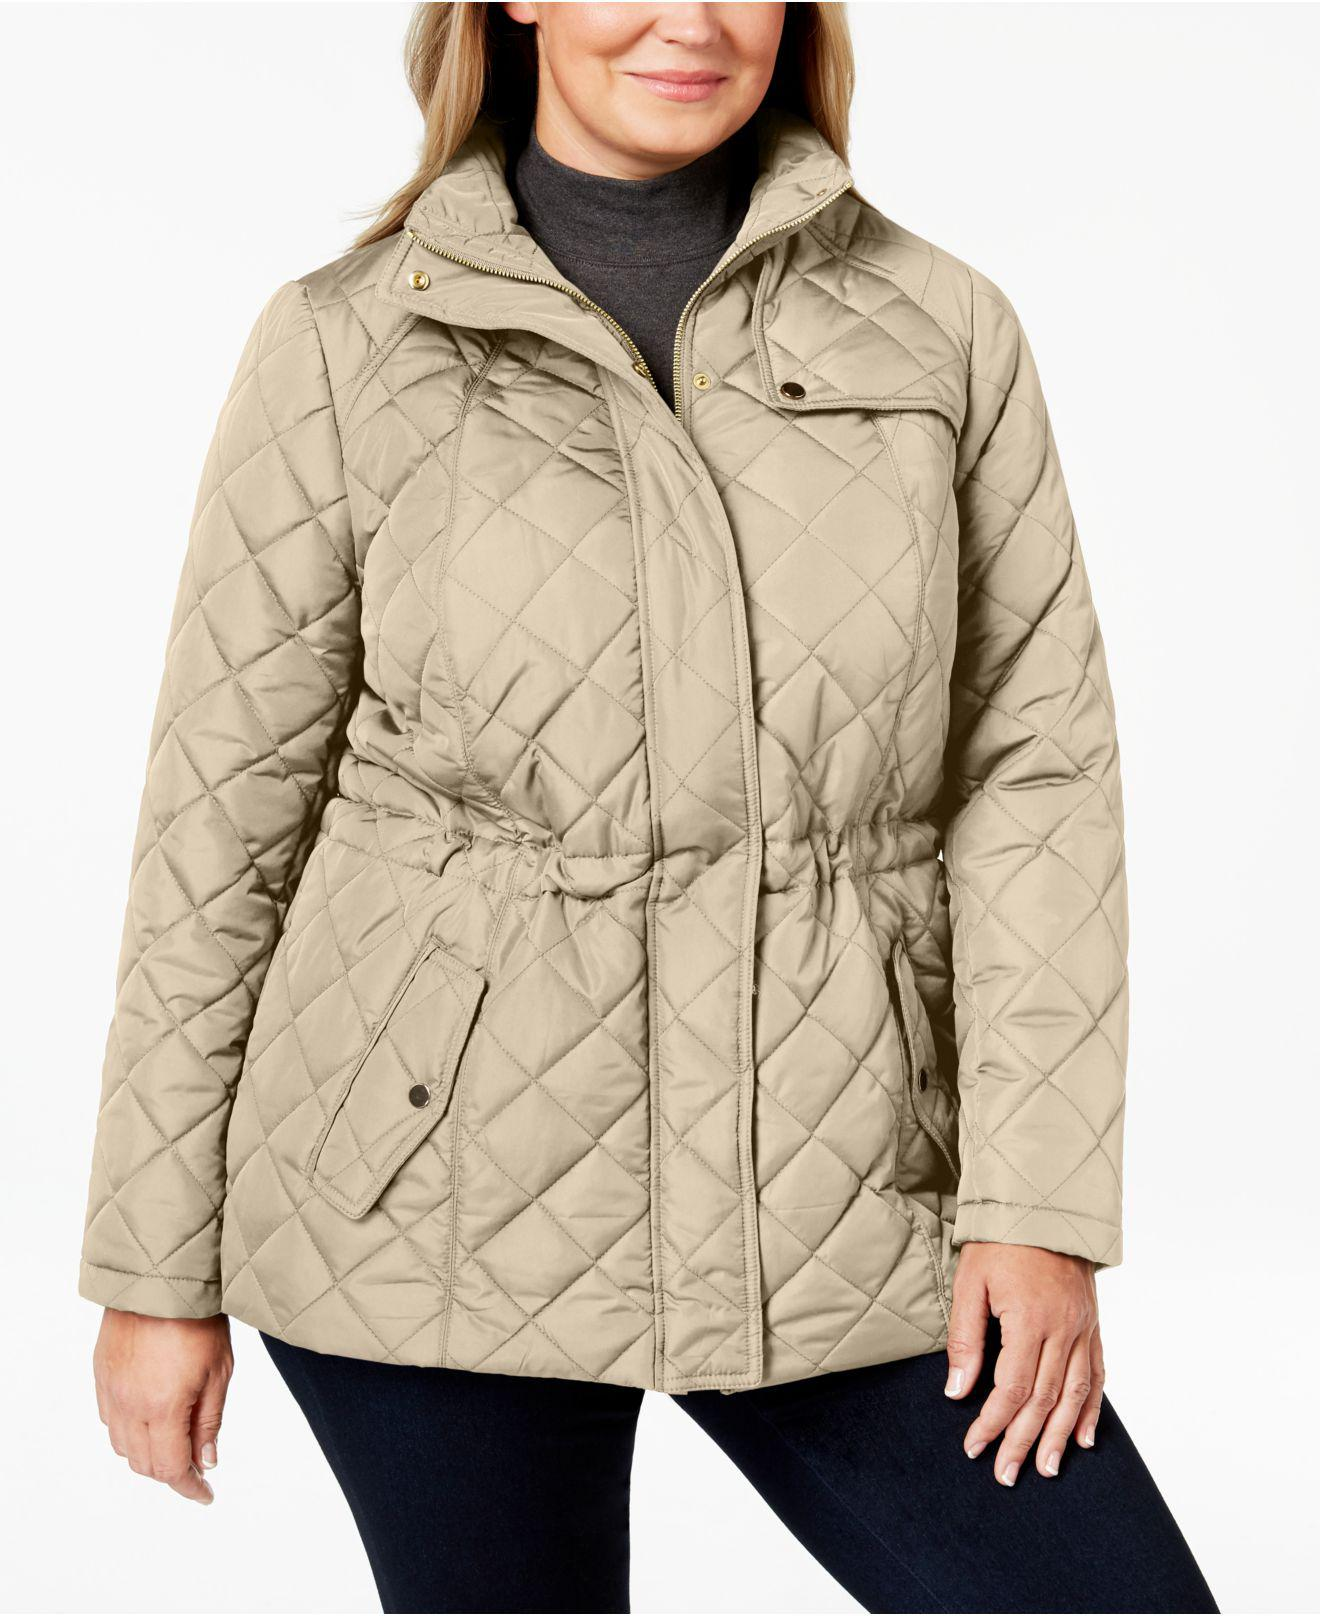 698eae6a306 Lyst - Charter Club Plus Size Quilted Zip-front Jacket